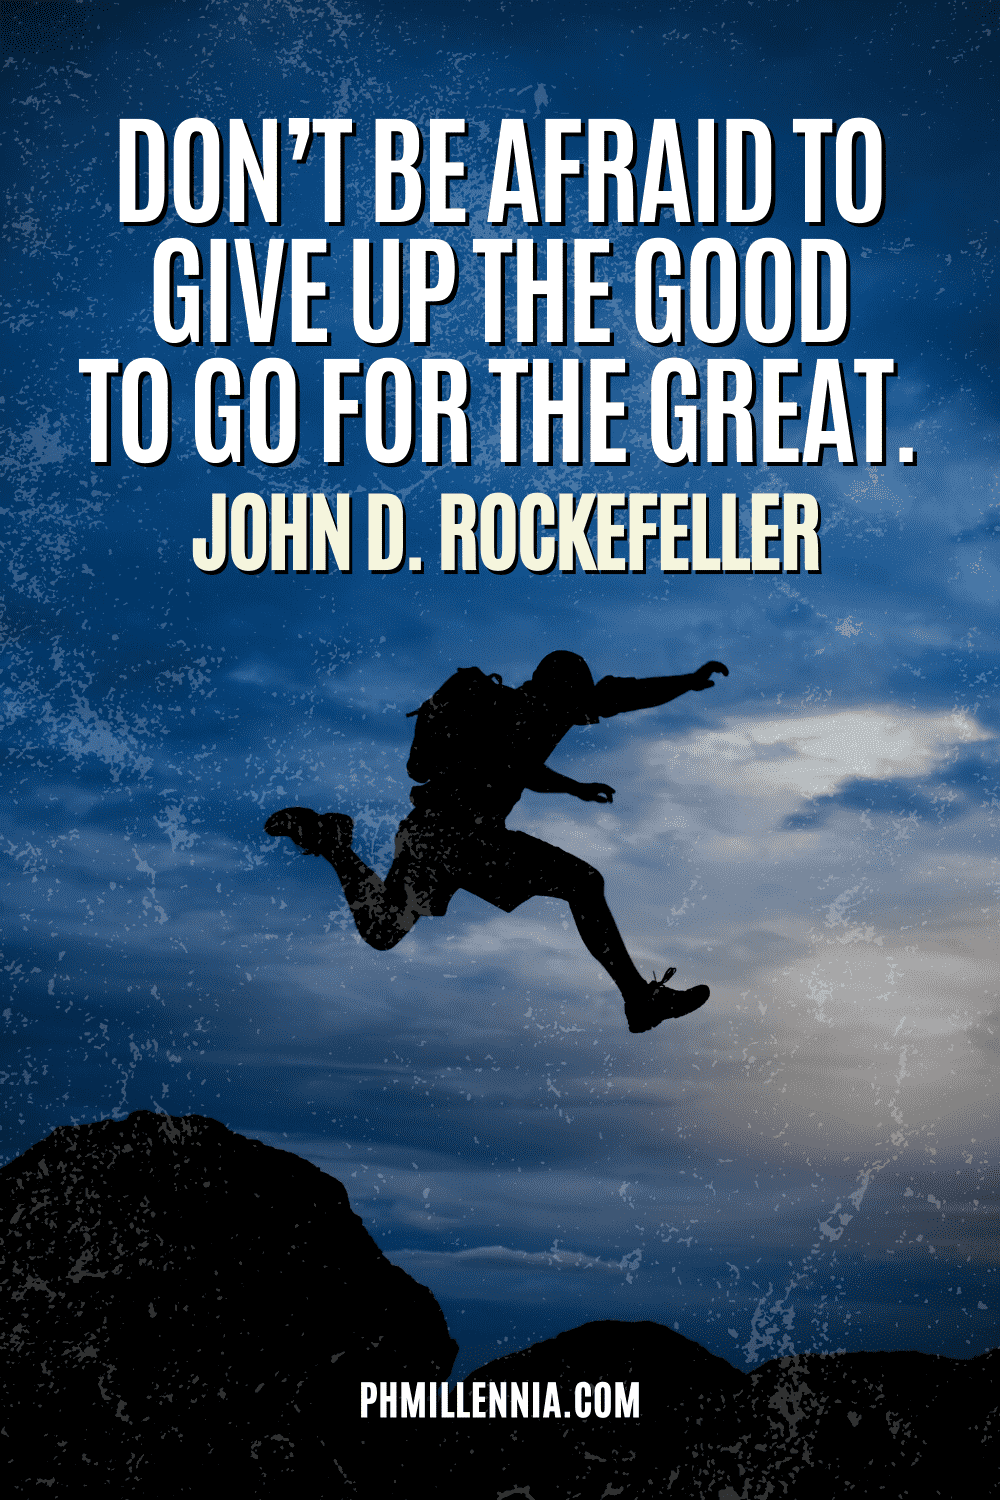 """A graphic containing text on an image of a silhouette of a man jumping, intended as a Pinterest Pin for the article """"199 Quotes on Success to Inspire You to Greatness"""" on phmillennia.com"""